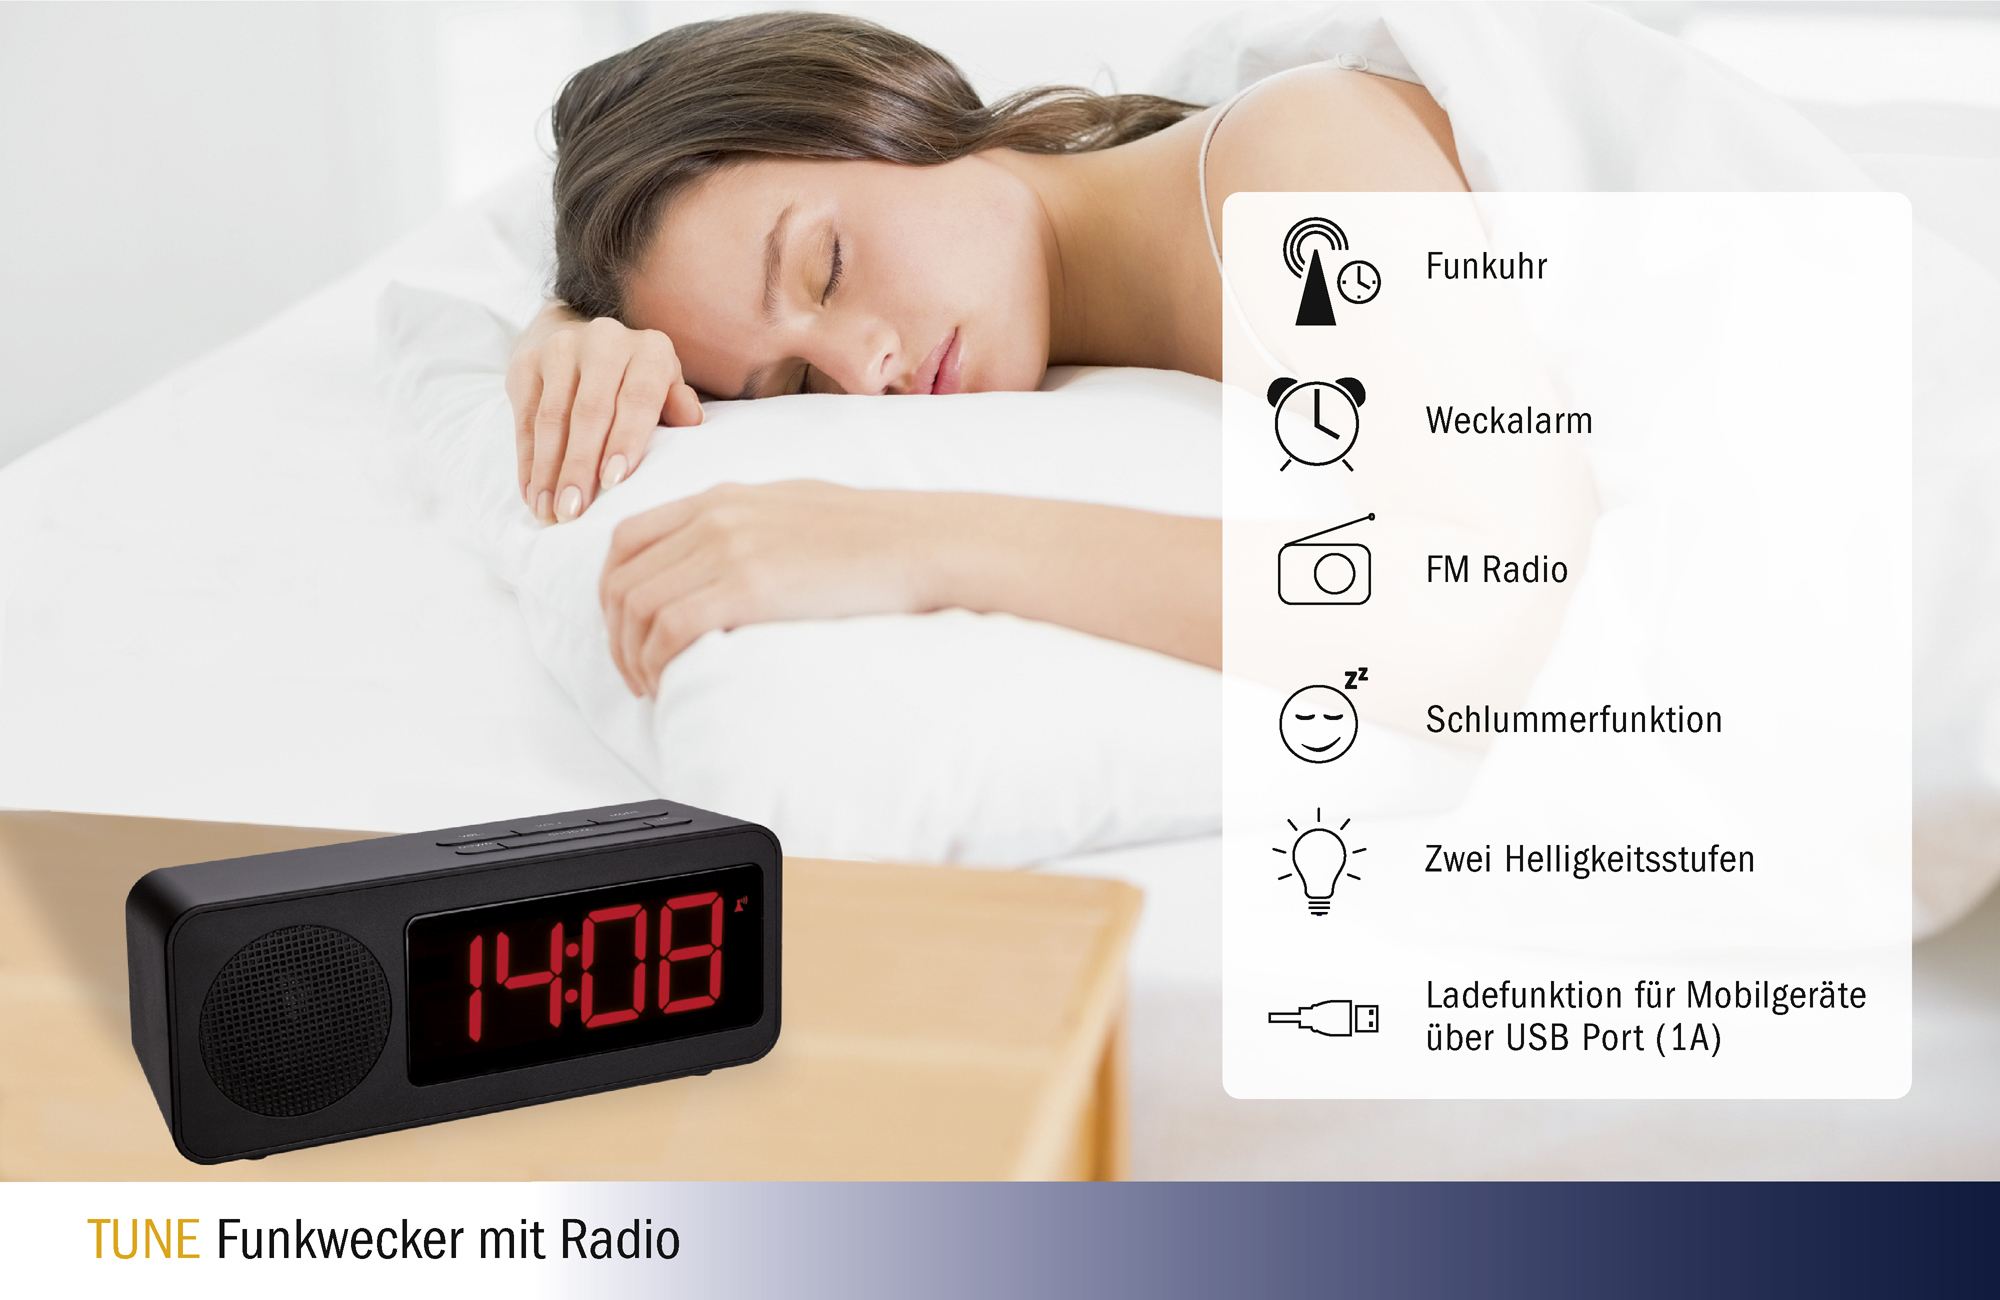 Tune_Funk-Wecker_mit Radio_60254601_Icons.jpg